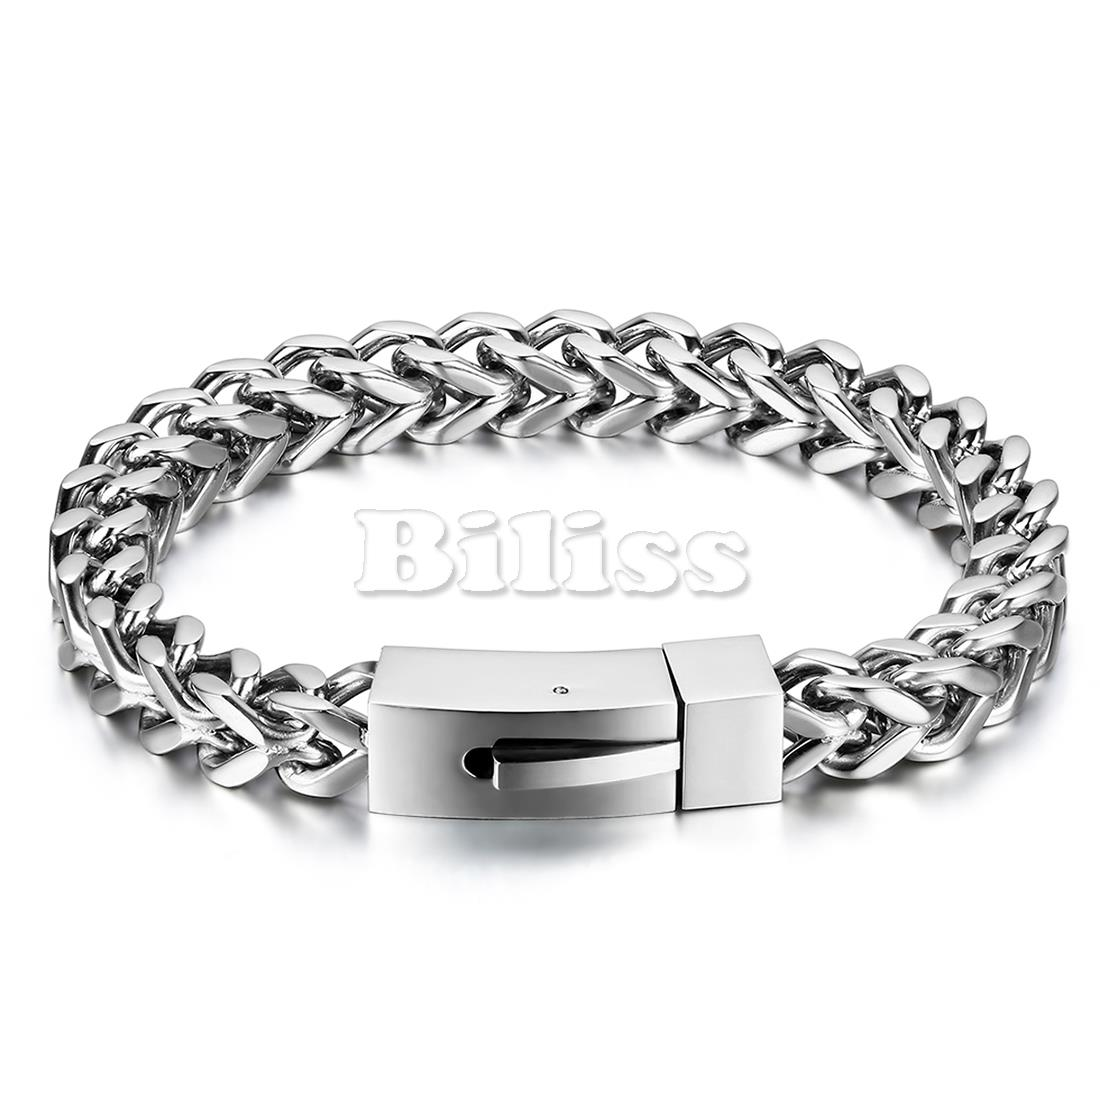 8mm Anti Allergic Heavy Solid Stainless Steel Mens Wheat Spiga Chain Link Bracelet 8 3 Silver Colour With Gift Bag In Bracelets From